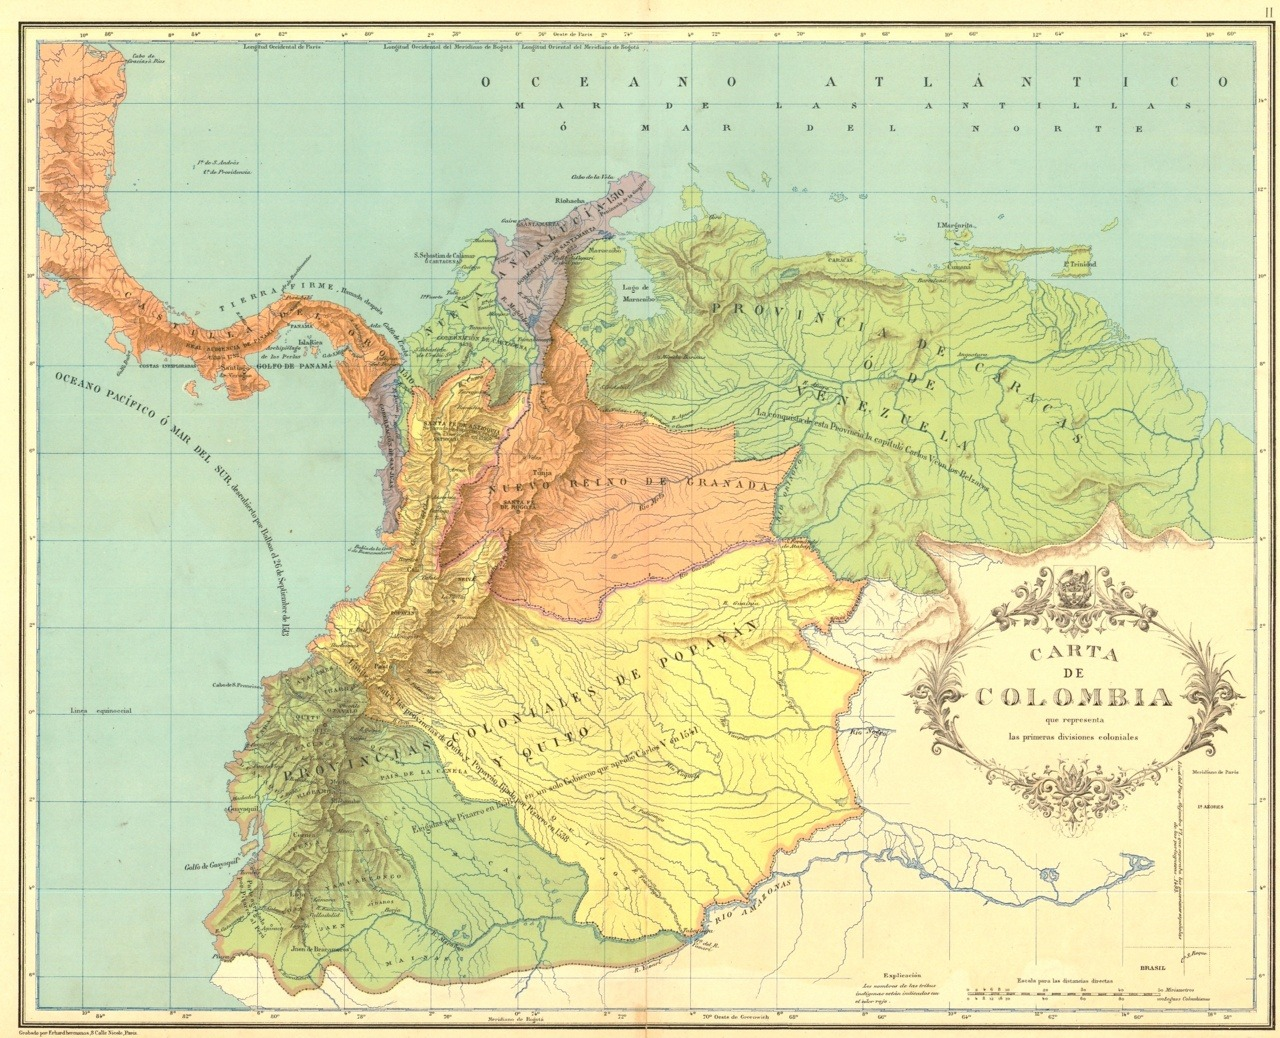 "cartographymaps: Colonial divisions of the New Kingdom of Granada (16th-18th c). From ""Atlas geográfico e histórico de la República de Colombia"", 1890."